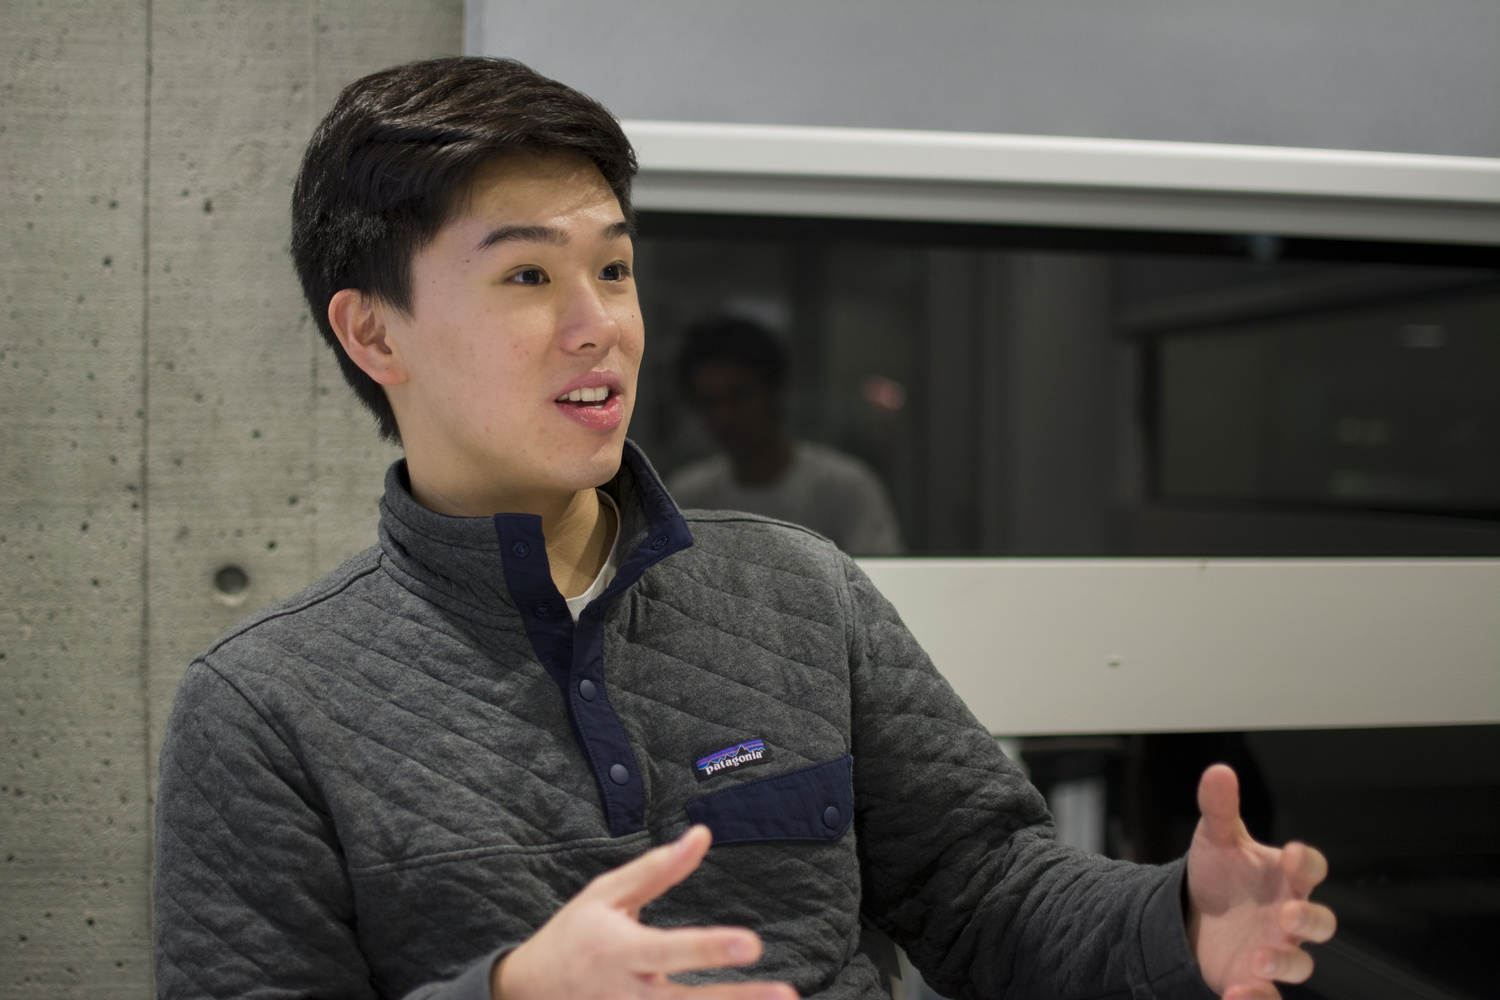 Joshua Y. Chiang '22 is a sophomore in Eliot House. Since he started posting on TikTok, he has garnered more than 86 thousand followers.